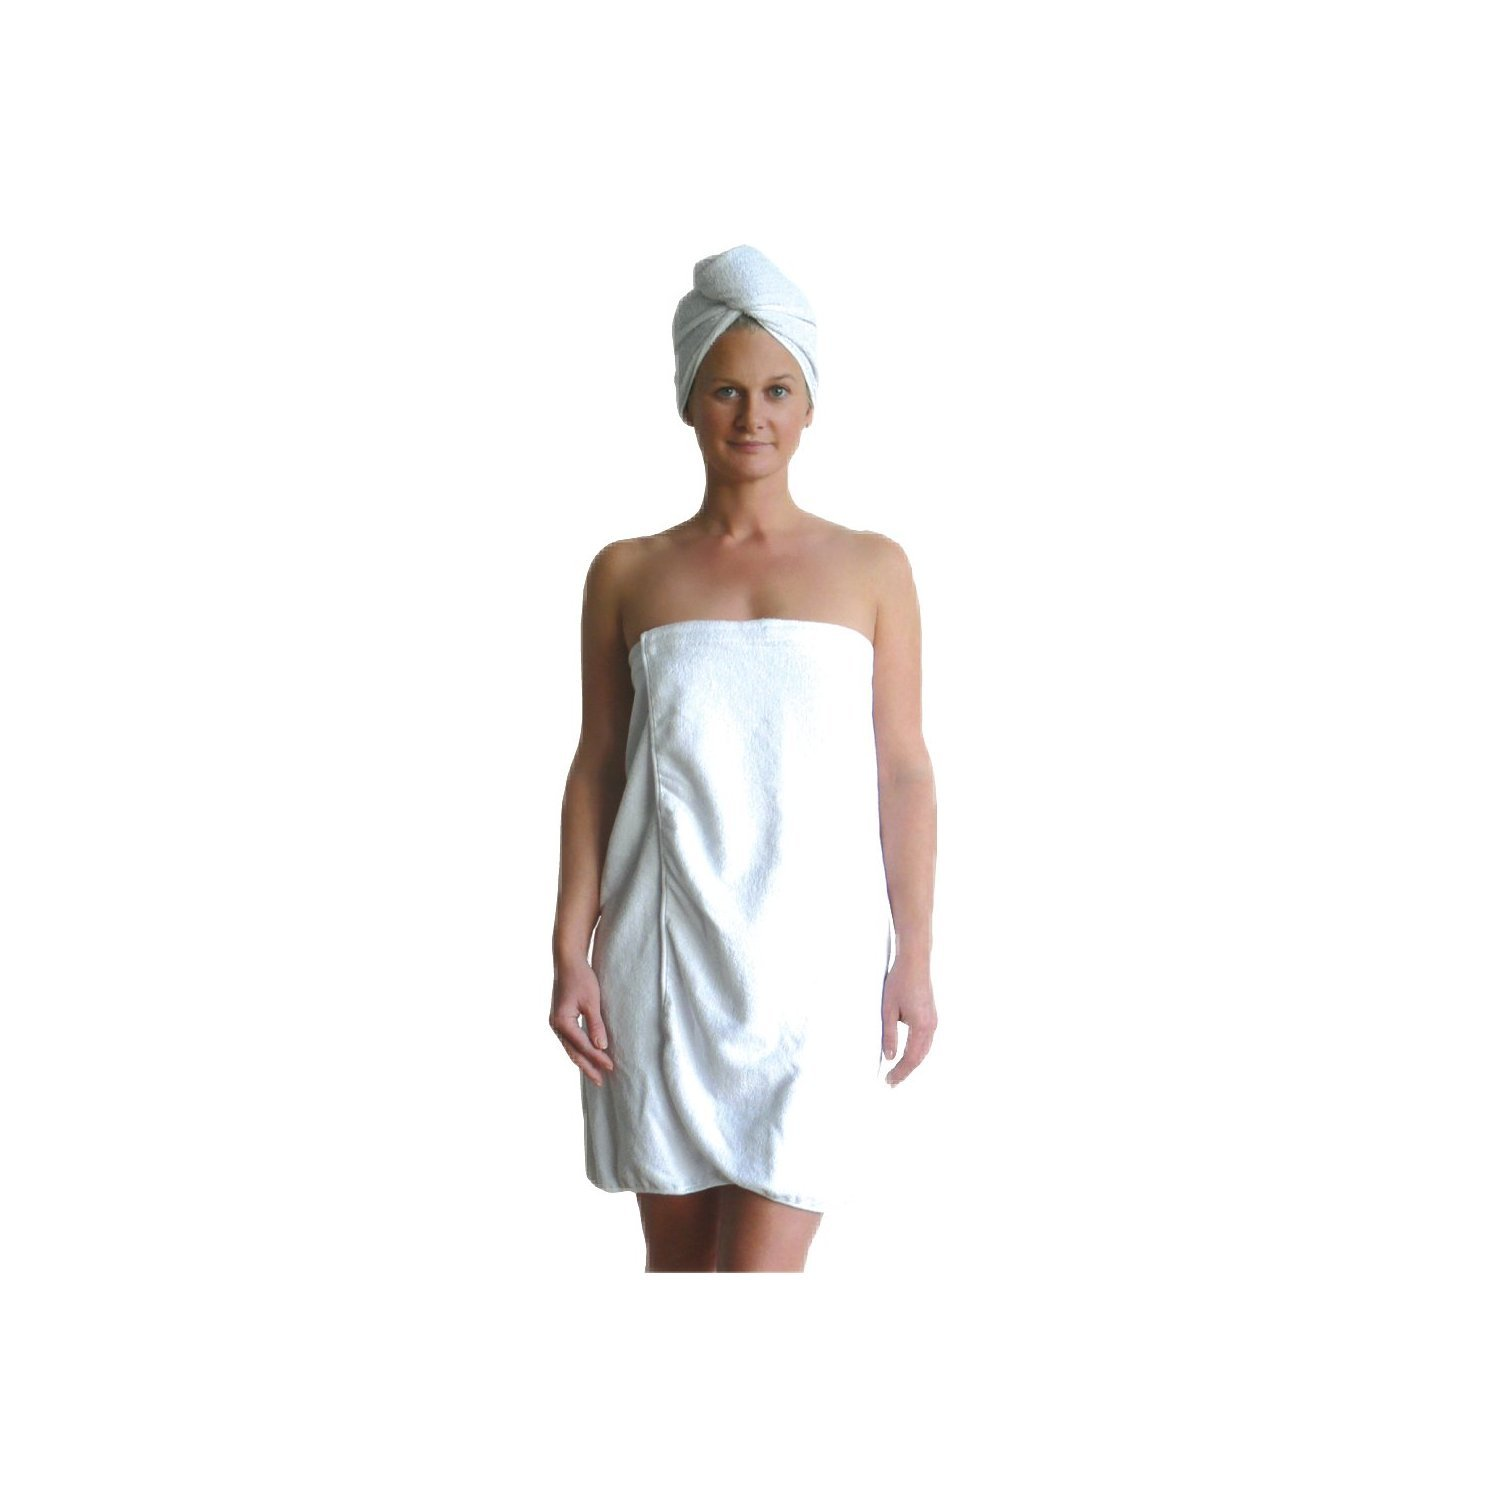 1 X MICROFIBRE BODY TOWEL/WRAP